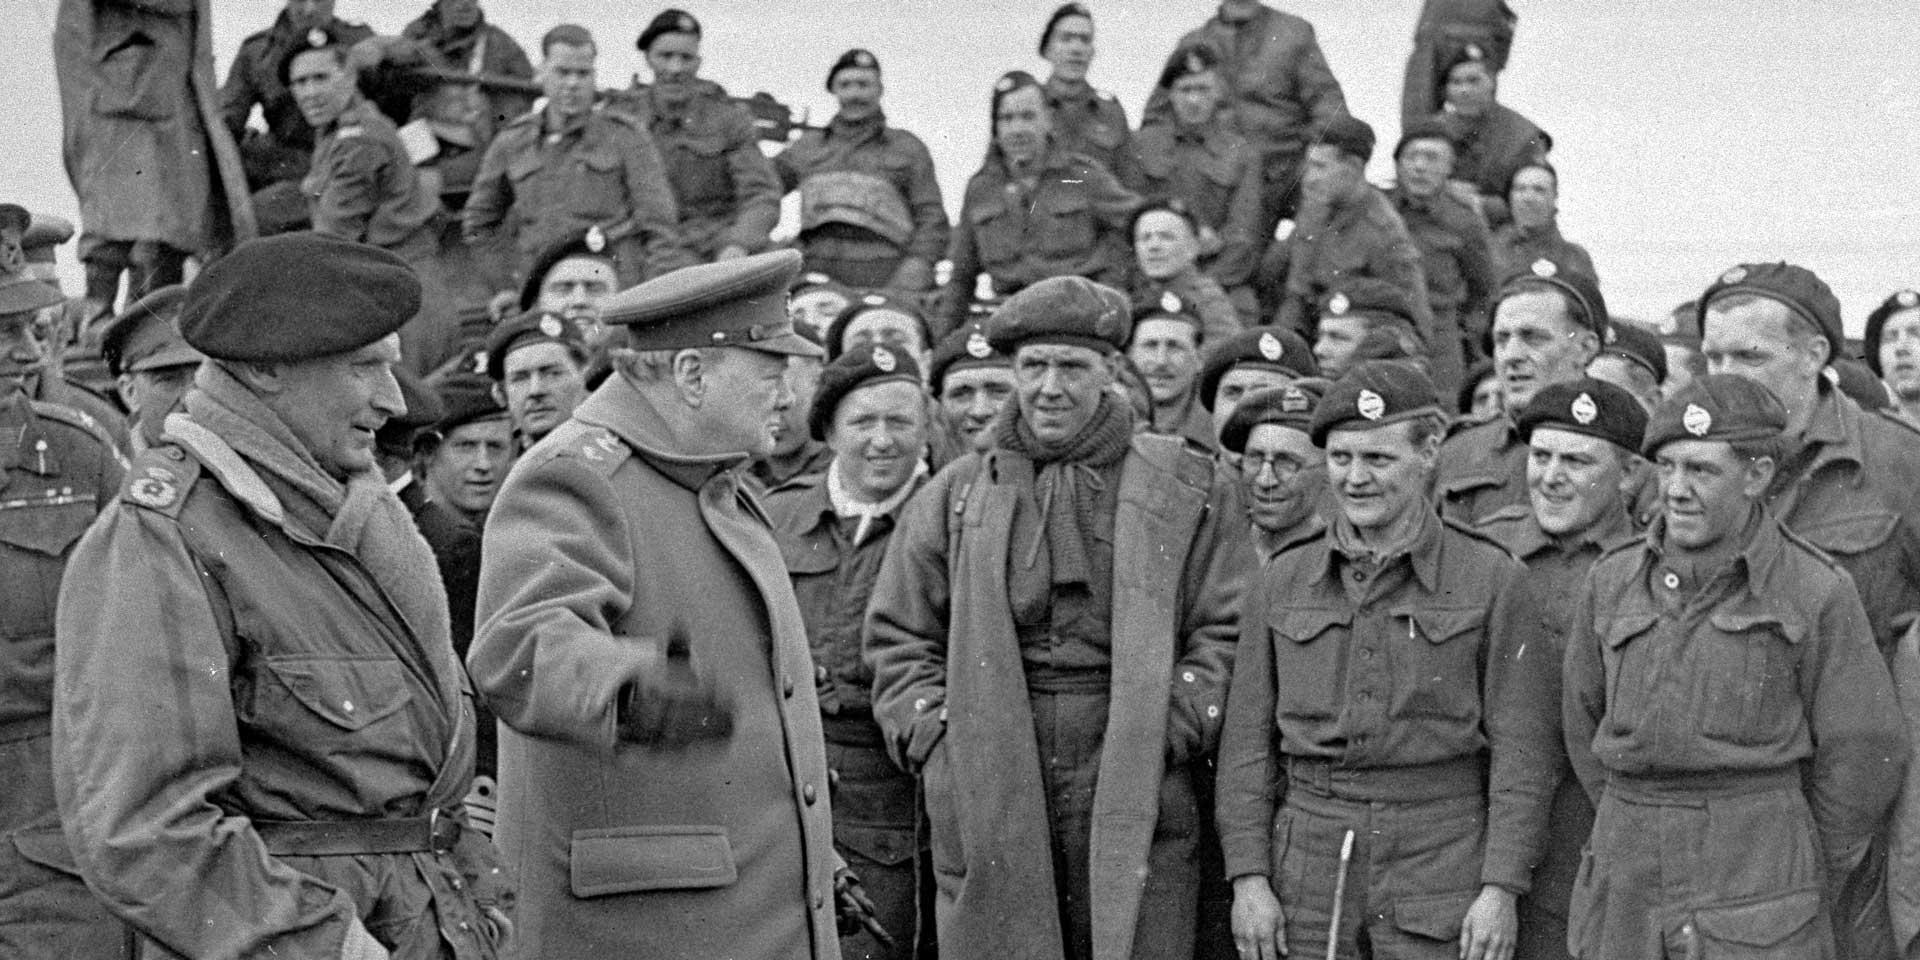 Winston Churchill and Field Marshal Montgomery visiting men of 79th Armoured Division, March 1945